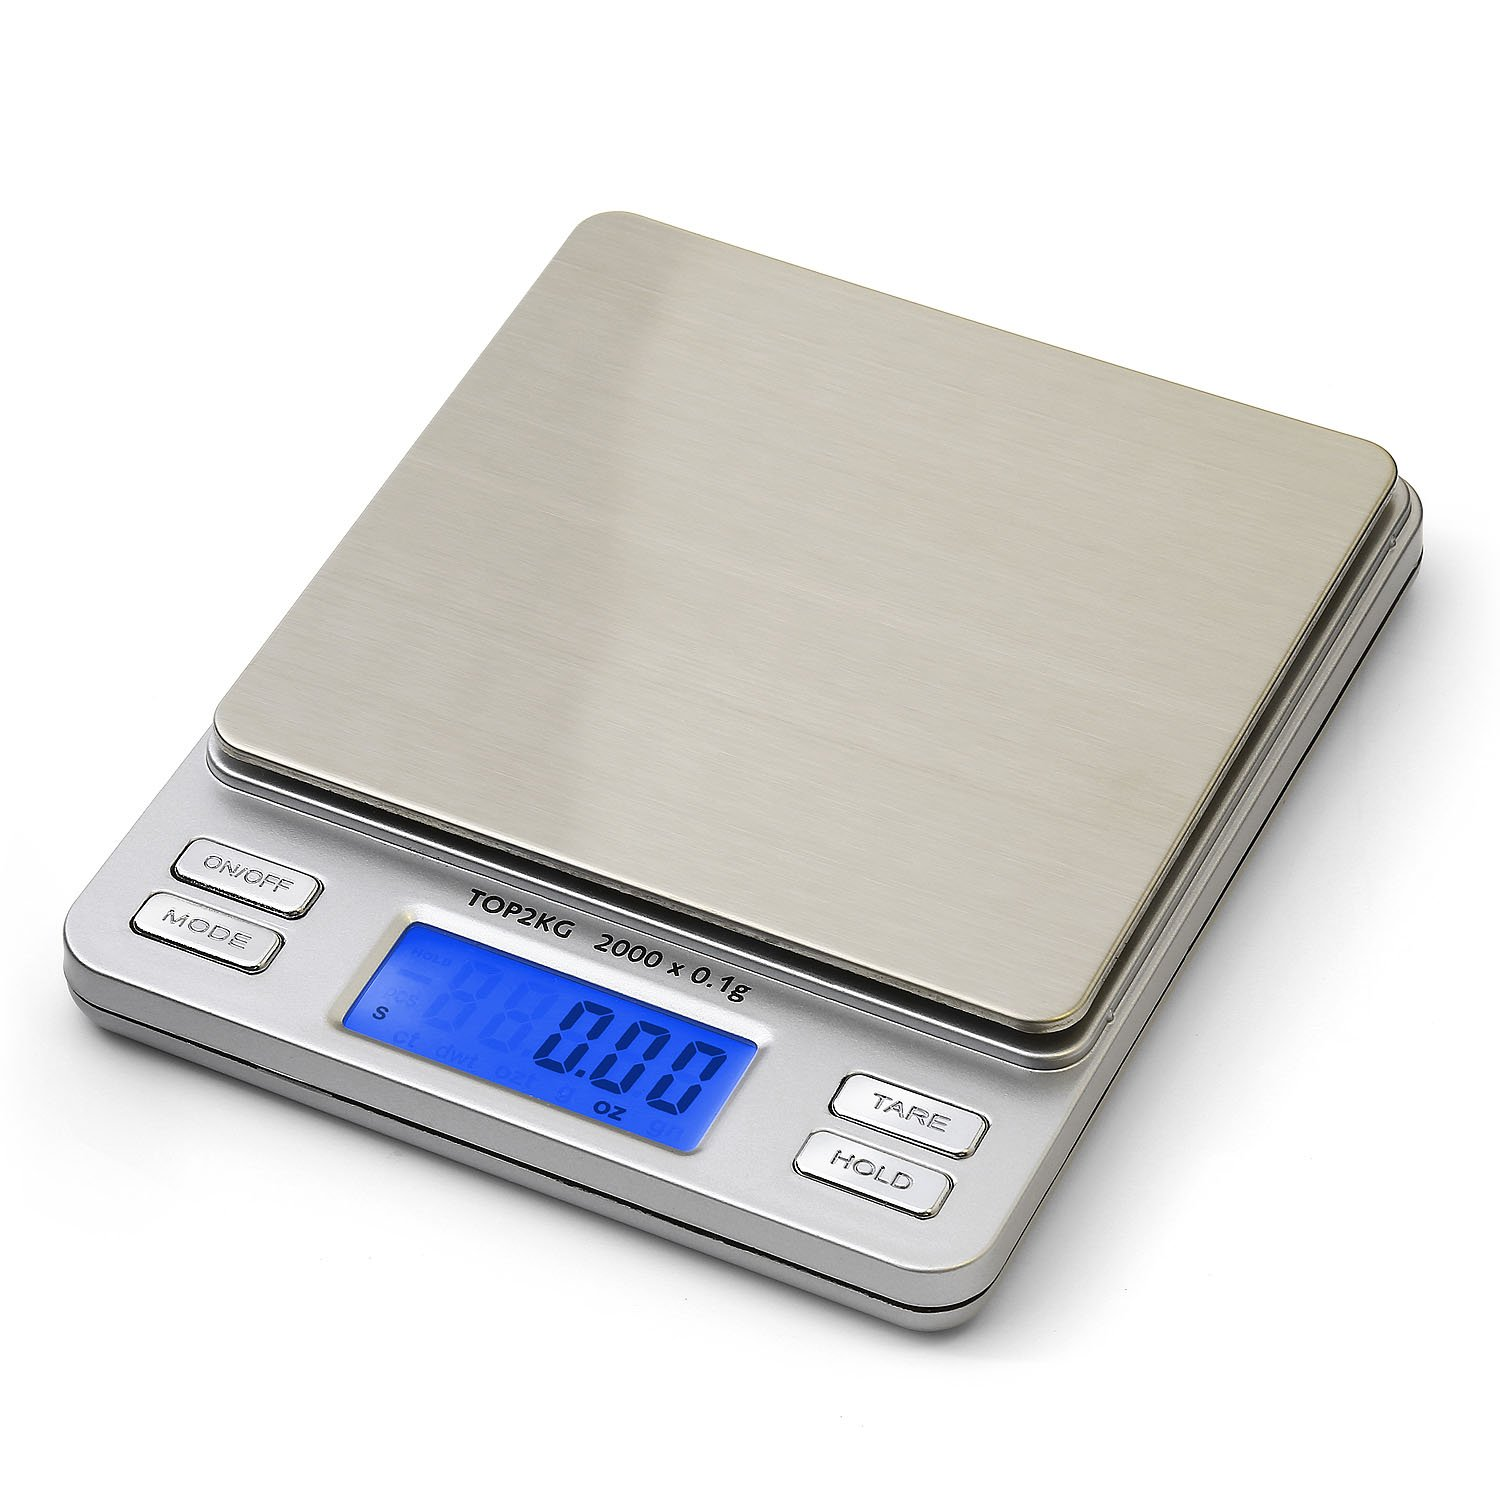 Smart weigh digital pro pocket scale top2kg best for Perfect scale pro reviews